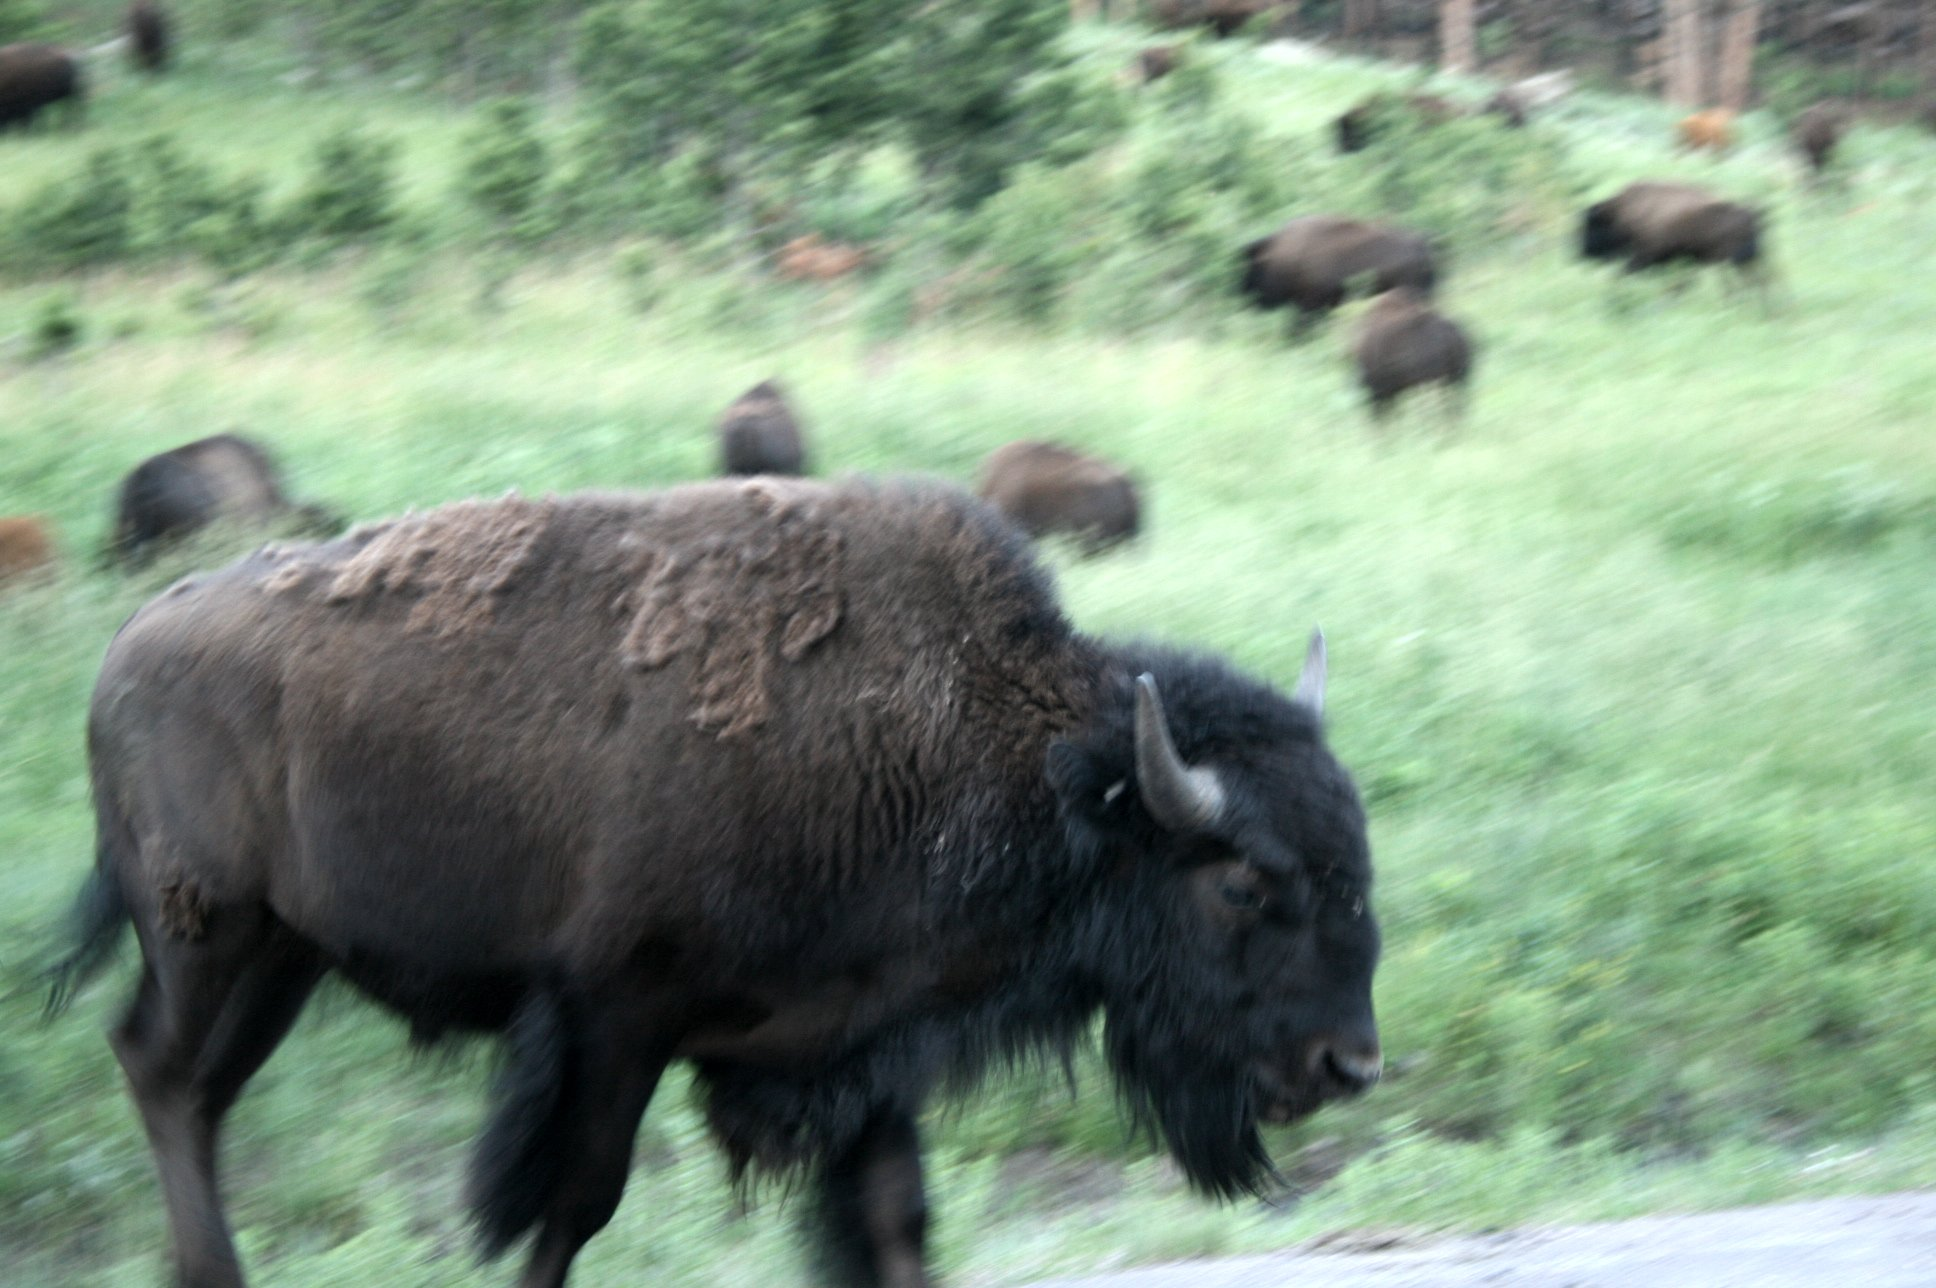 The Plains tribes gained virtually all their resources from the Buffalo herds - thinning out because of White hunting